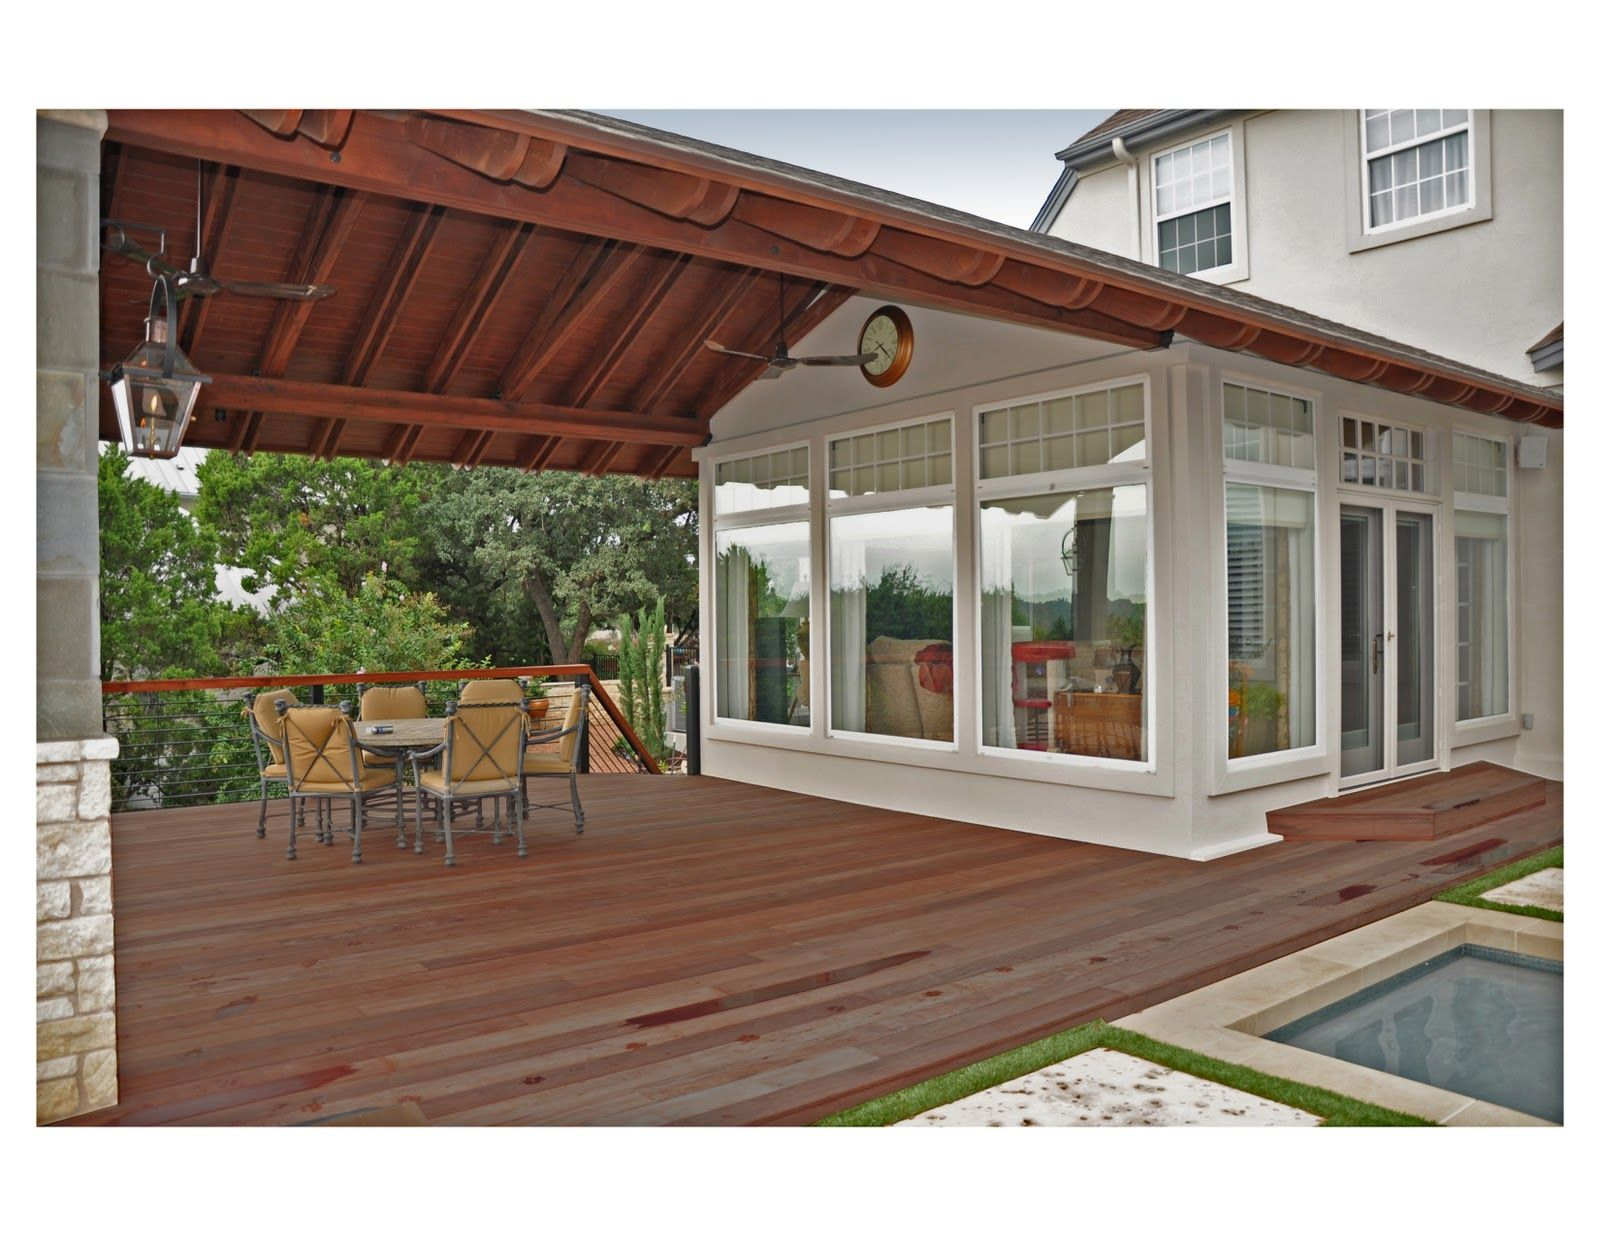 Covered patio addition for off the garage | Patios ...